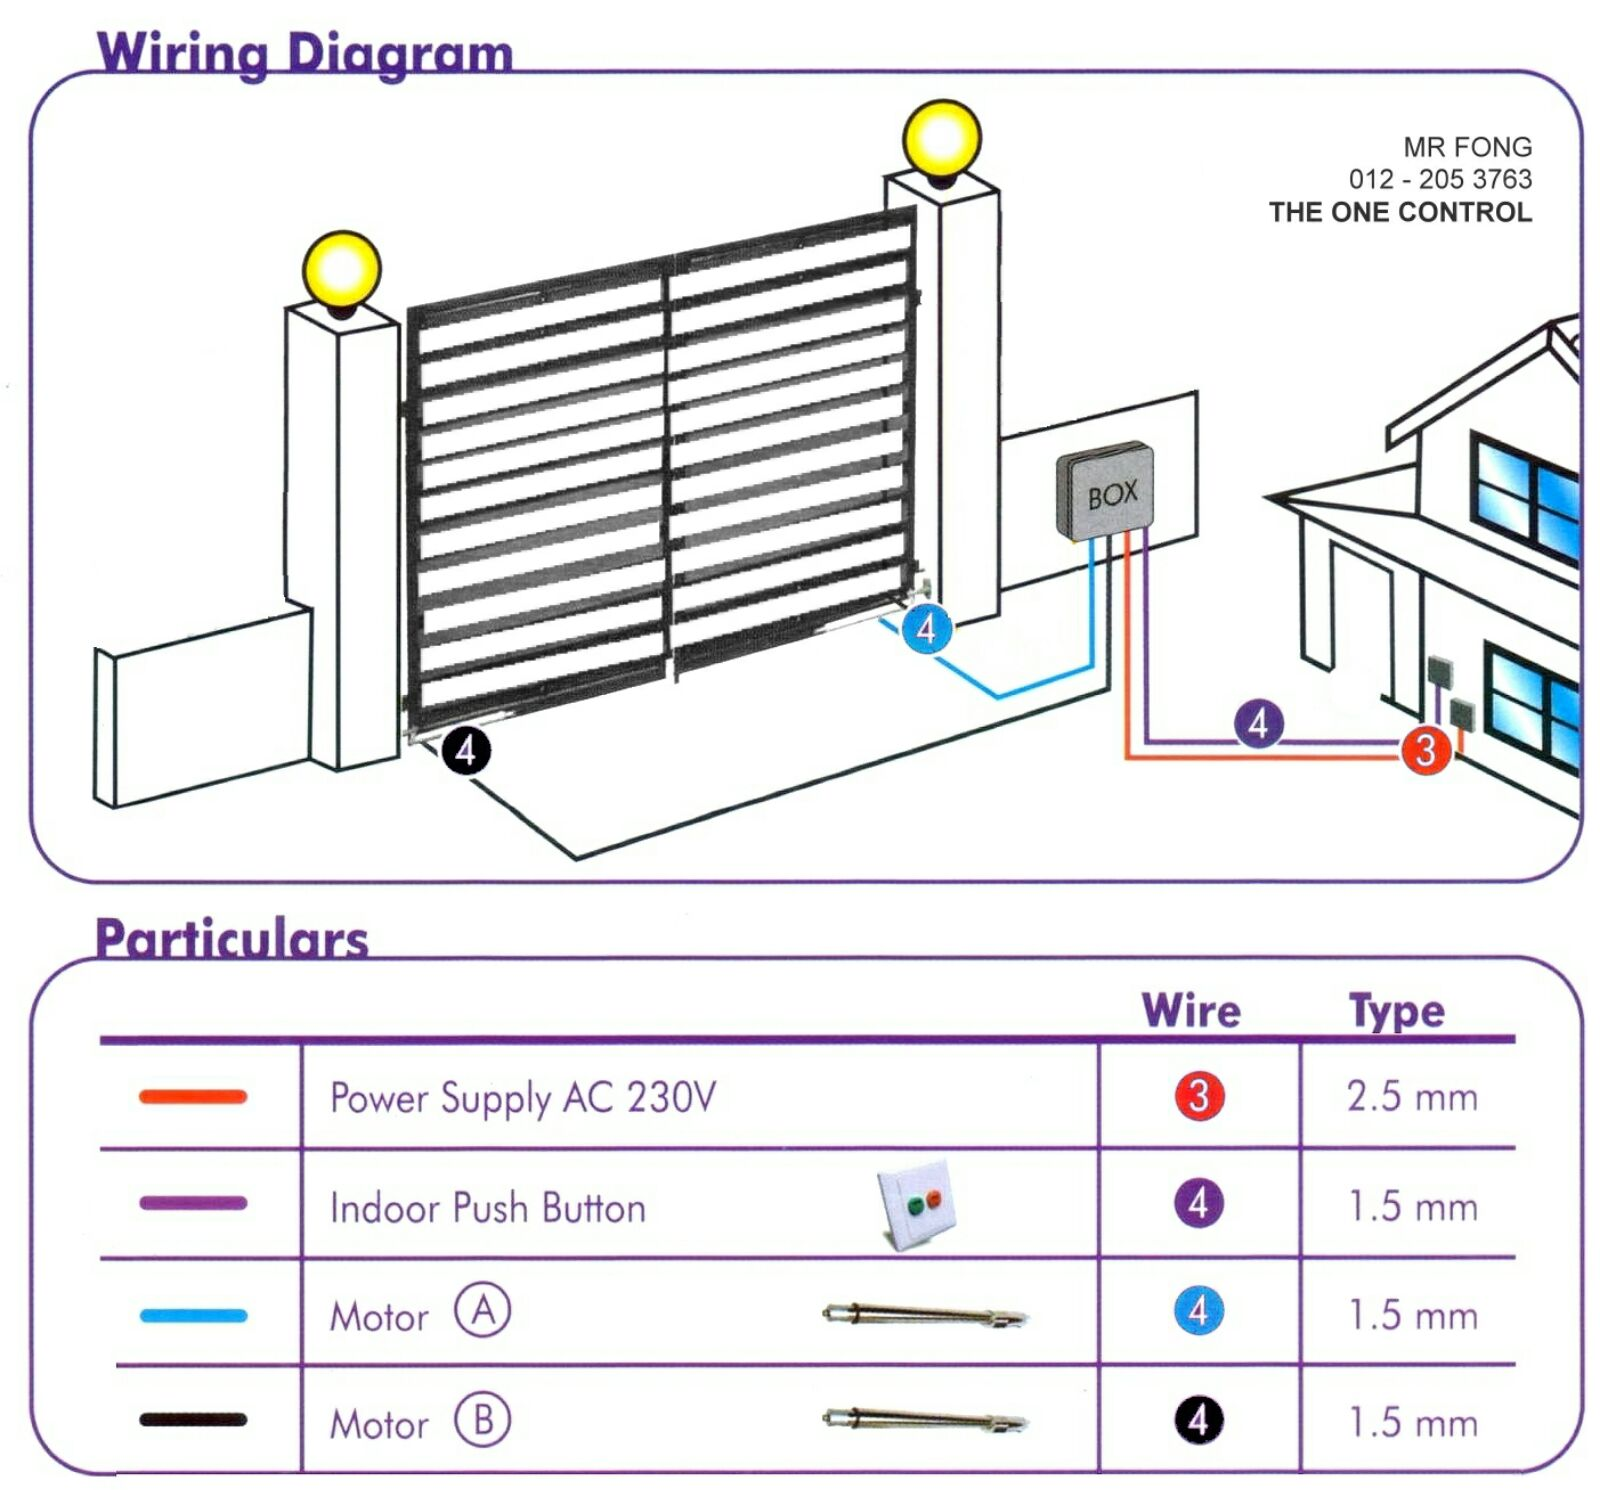 hight resolution of wiring diagram energy autogate auto gate system selangor malaysia kuala lumpur kl subang puchong supplier supply supplies installation the one